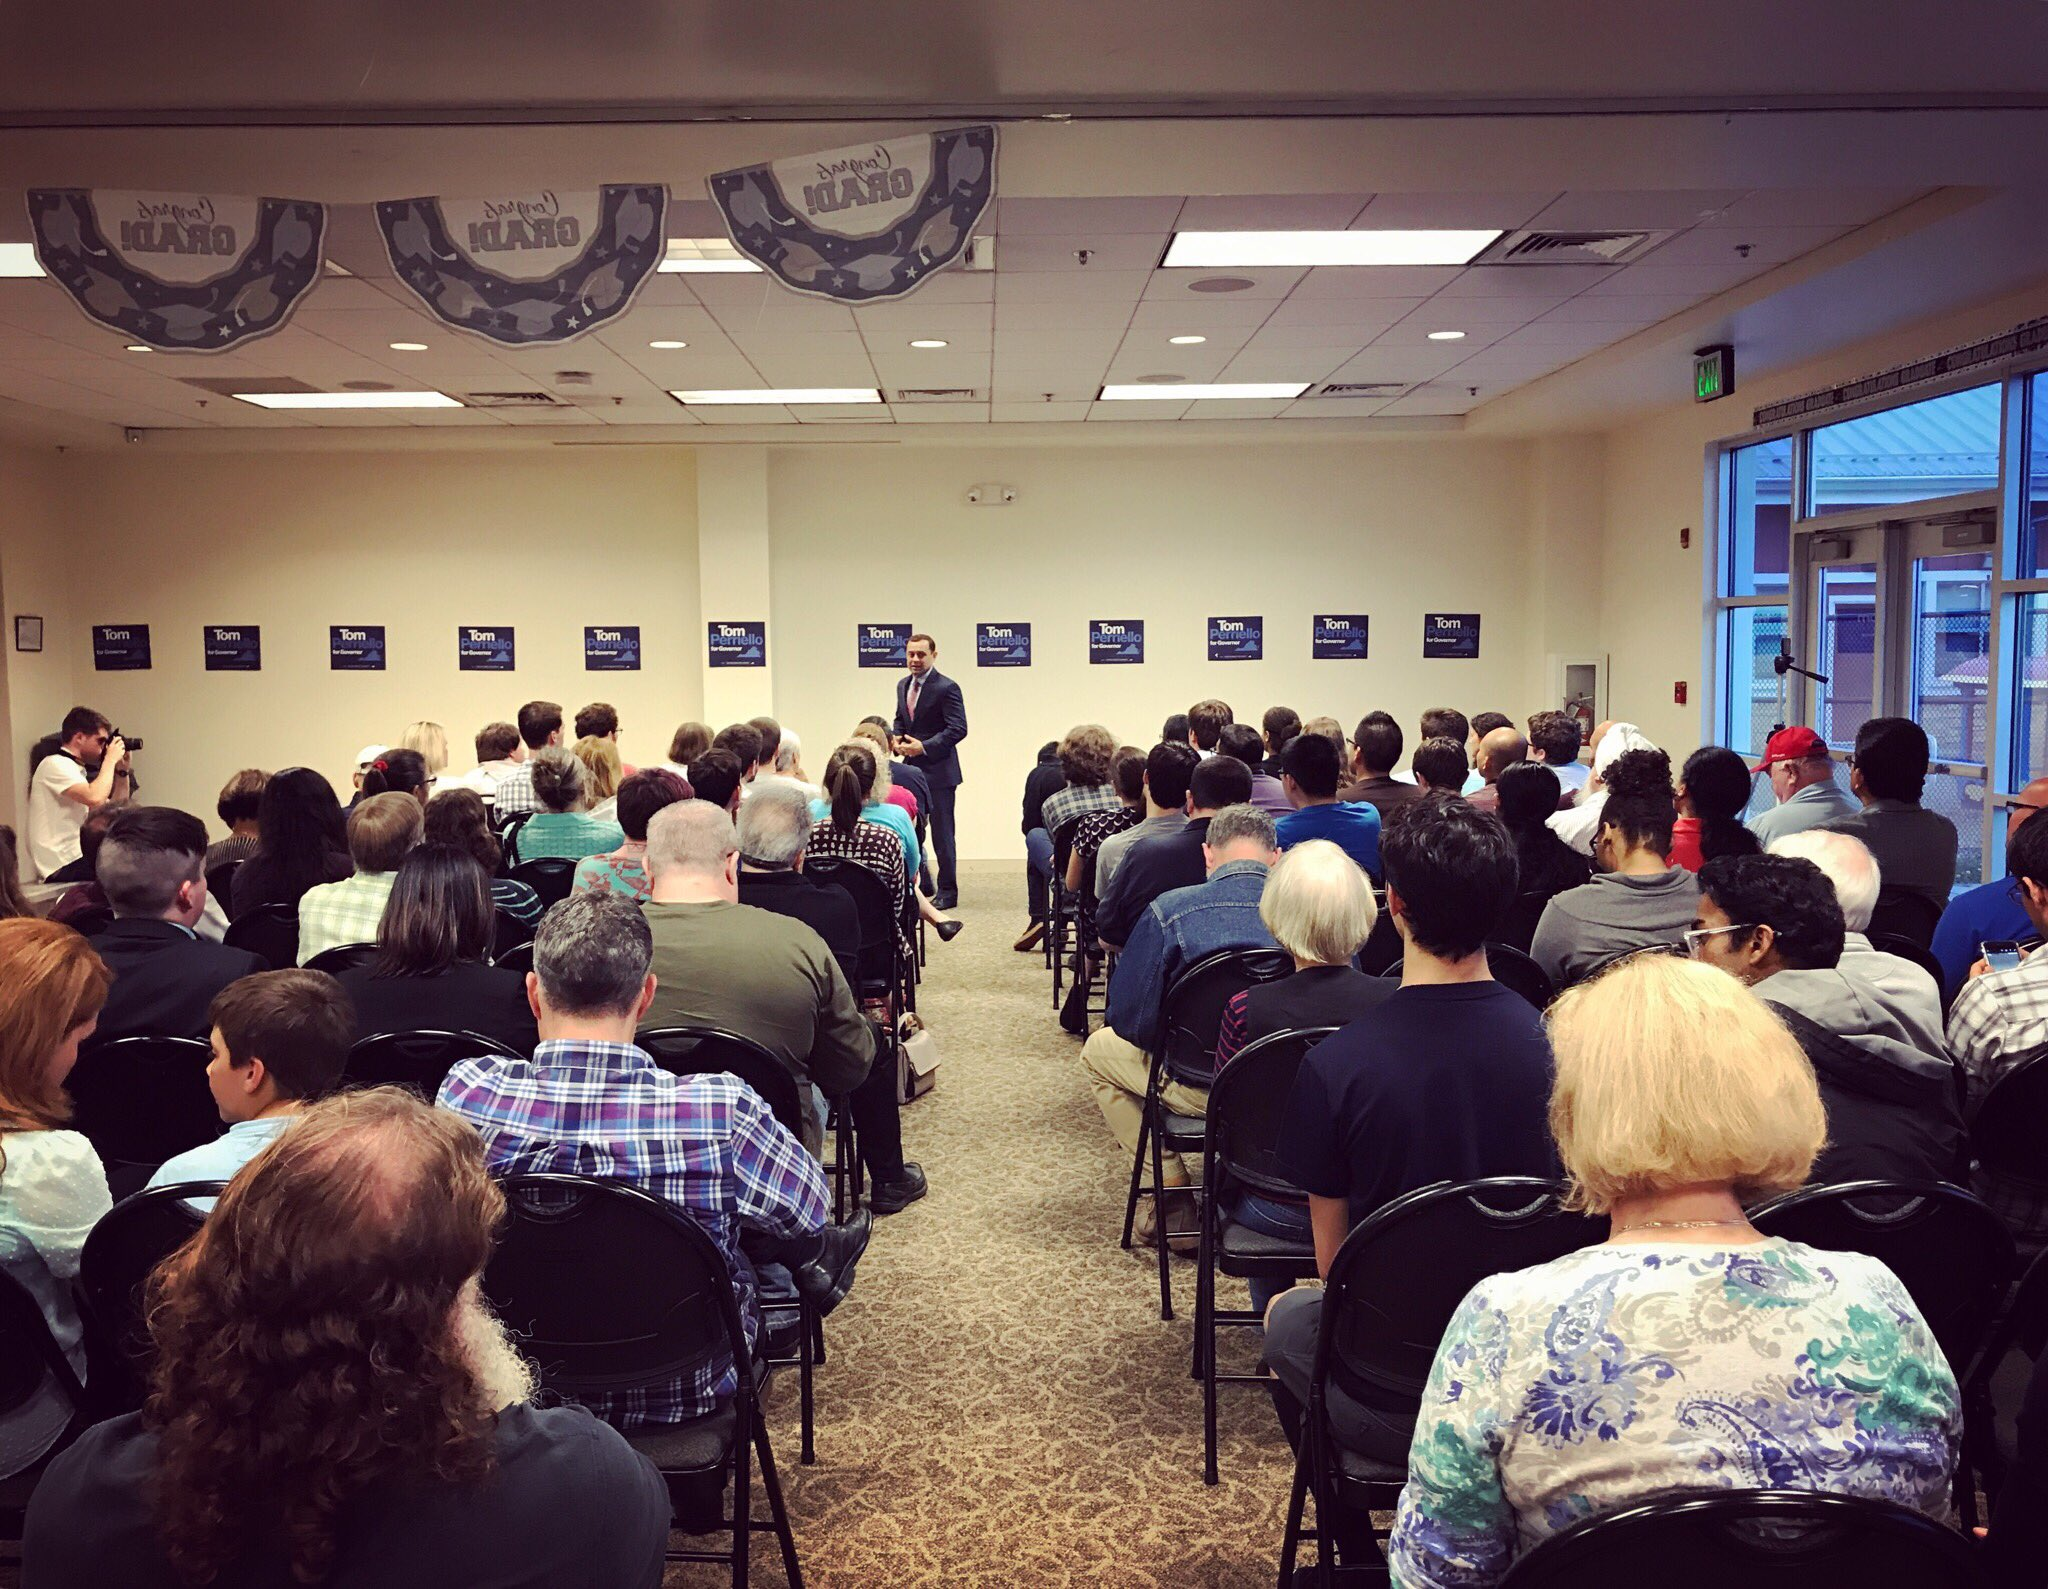 We're live for our Sterling town hall! Join us: https://t.co/T5svfwF4F8 https://t.co/70VUWUNjBE